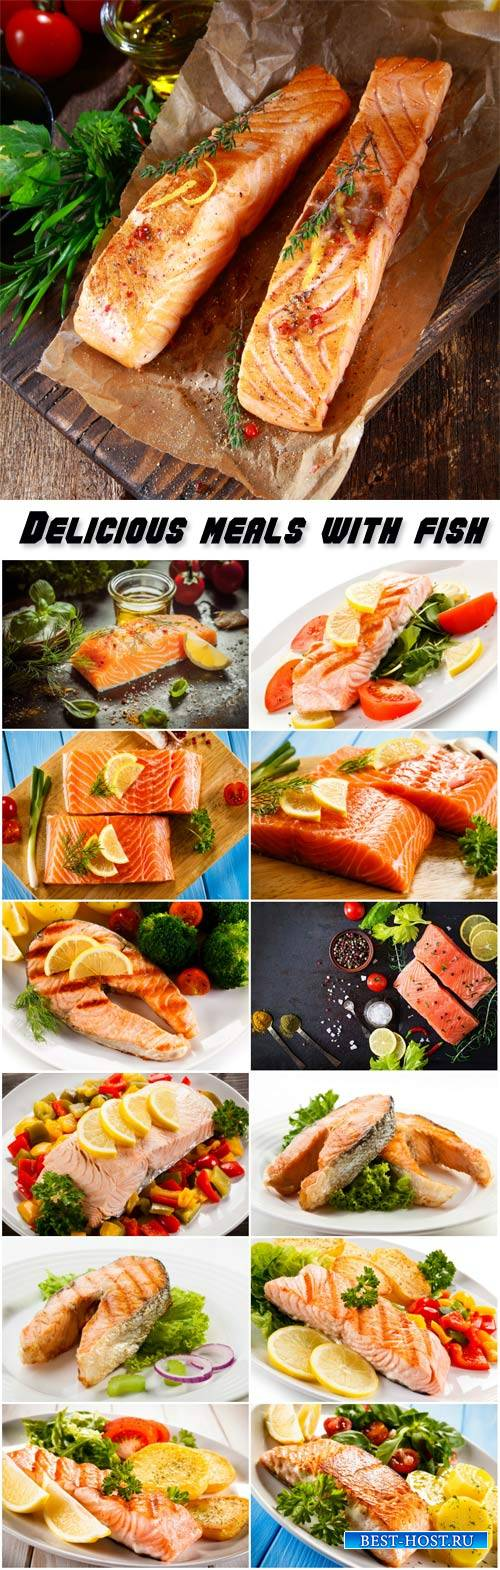 Delicious meals with fish